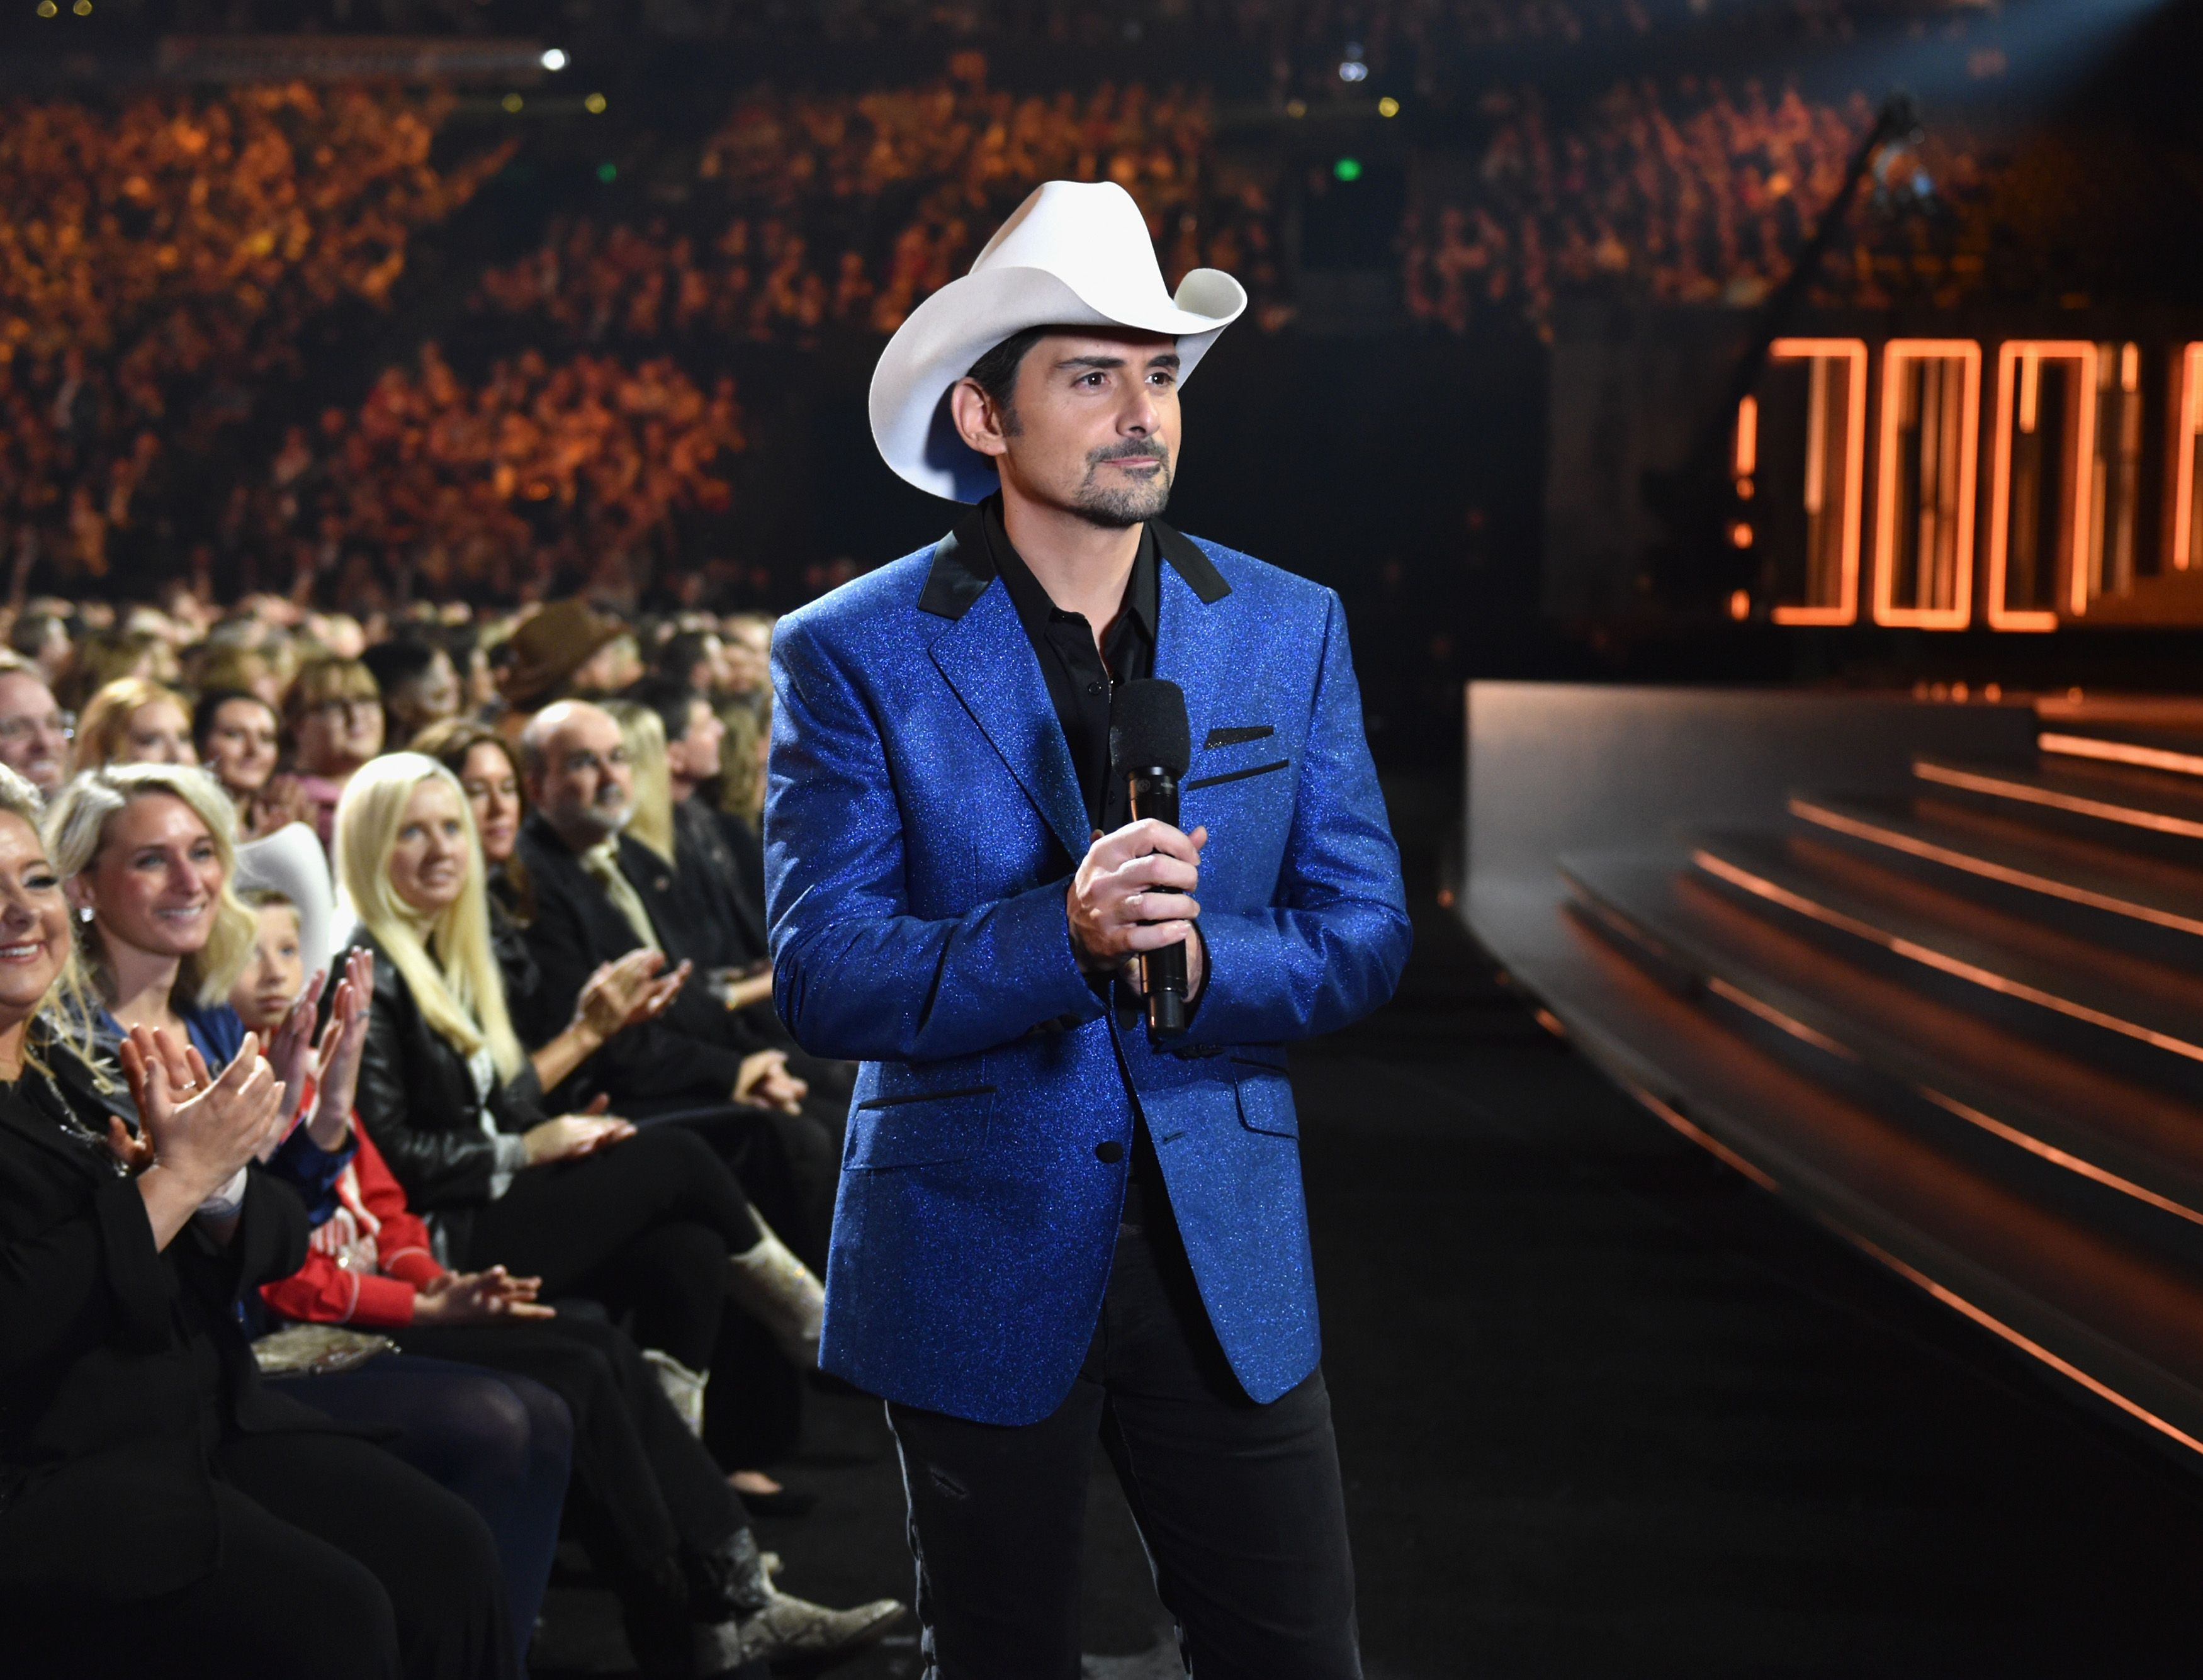 Brad Paisley Announced He's Starring in a New Show 1 Month After the CMA Hosting Drama